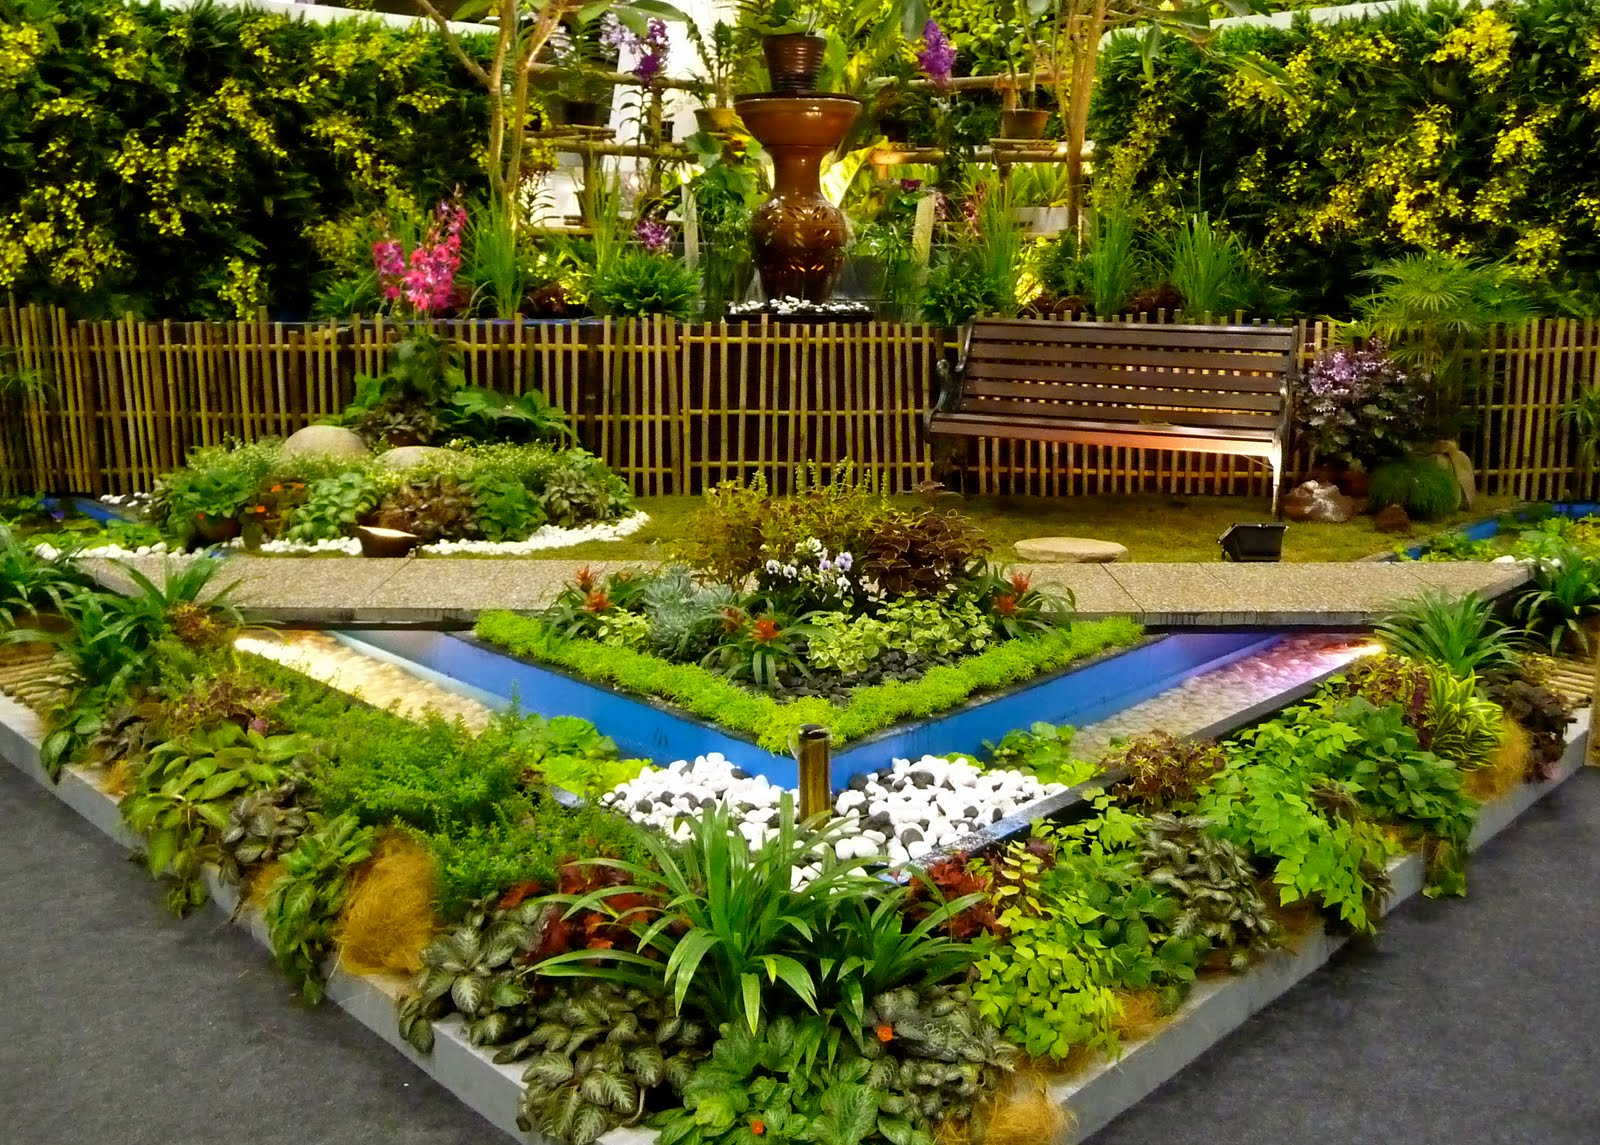 Good home ideas asia 39 s best garden and flower show returns for Great garden design ideas